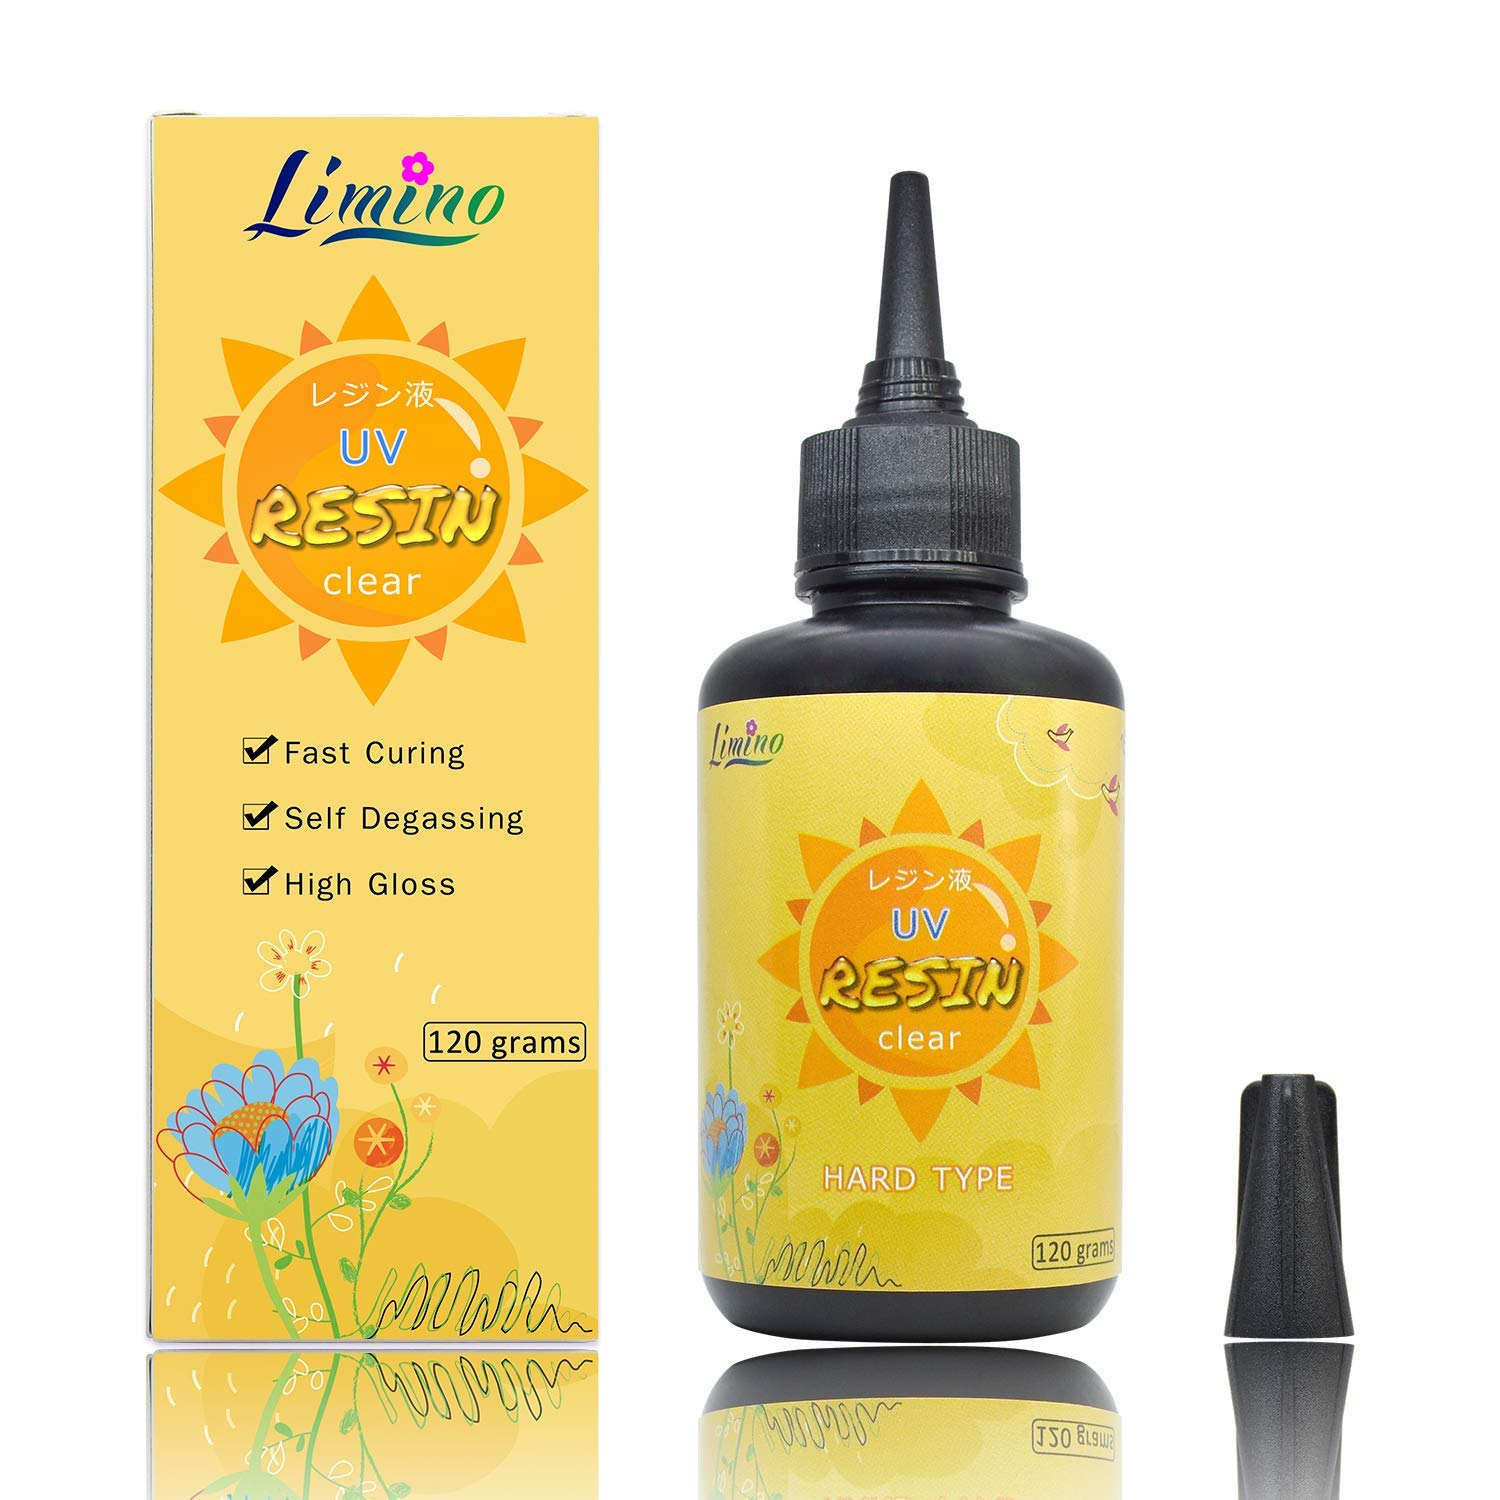 UV Resin - 120g Transparent Ultraviolet Curing Epoxy Resin for DIY Jewelry Making, Craft Decoration - Solar Cure Sunlight Activated Resin Hard Crystal Clear Glue for Casting & Coating, DIY Resin Mold